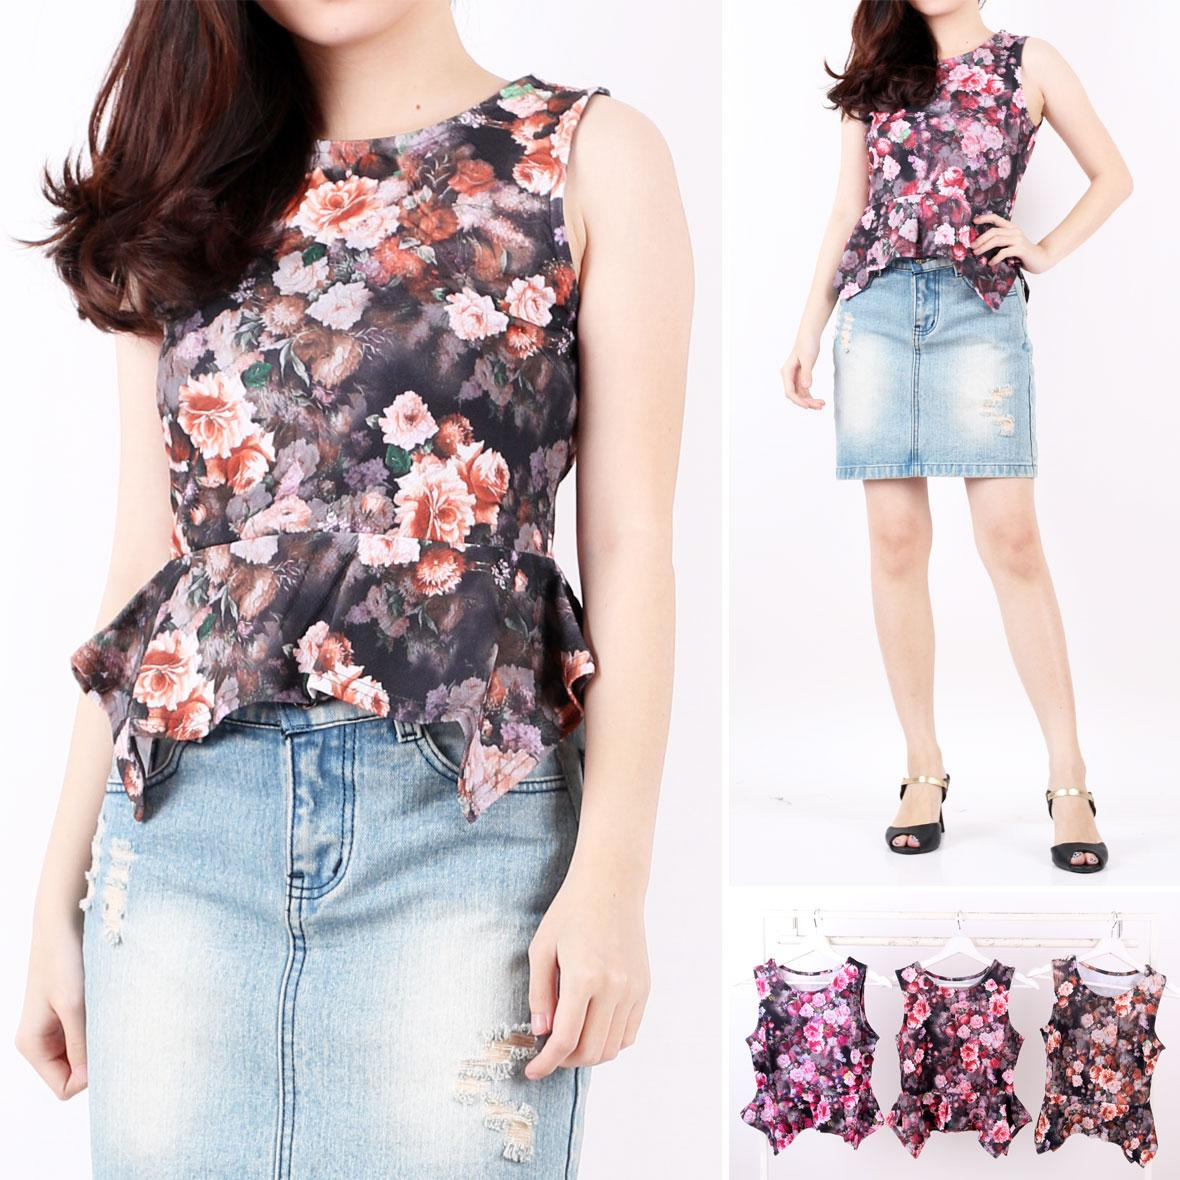 Oma Holley Fashion wariana Blouse Casual Sleveeles - 4 Warna - Size M